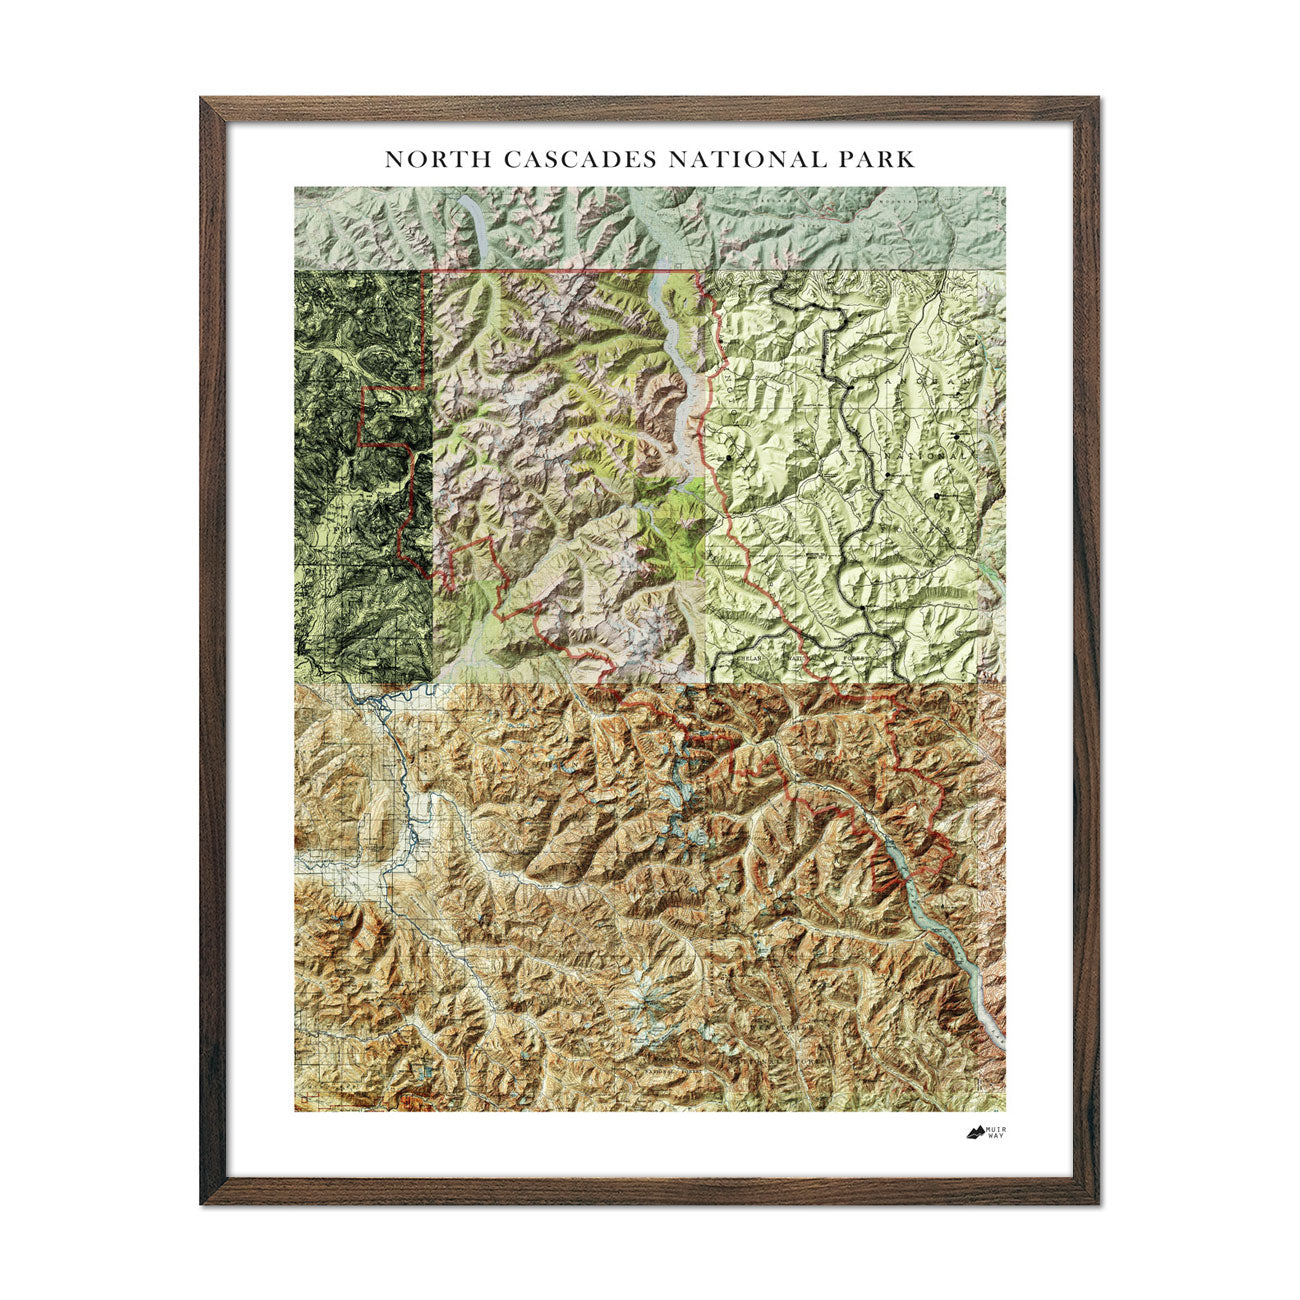 Relief Map of North Cascades National Park